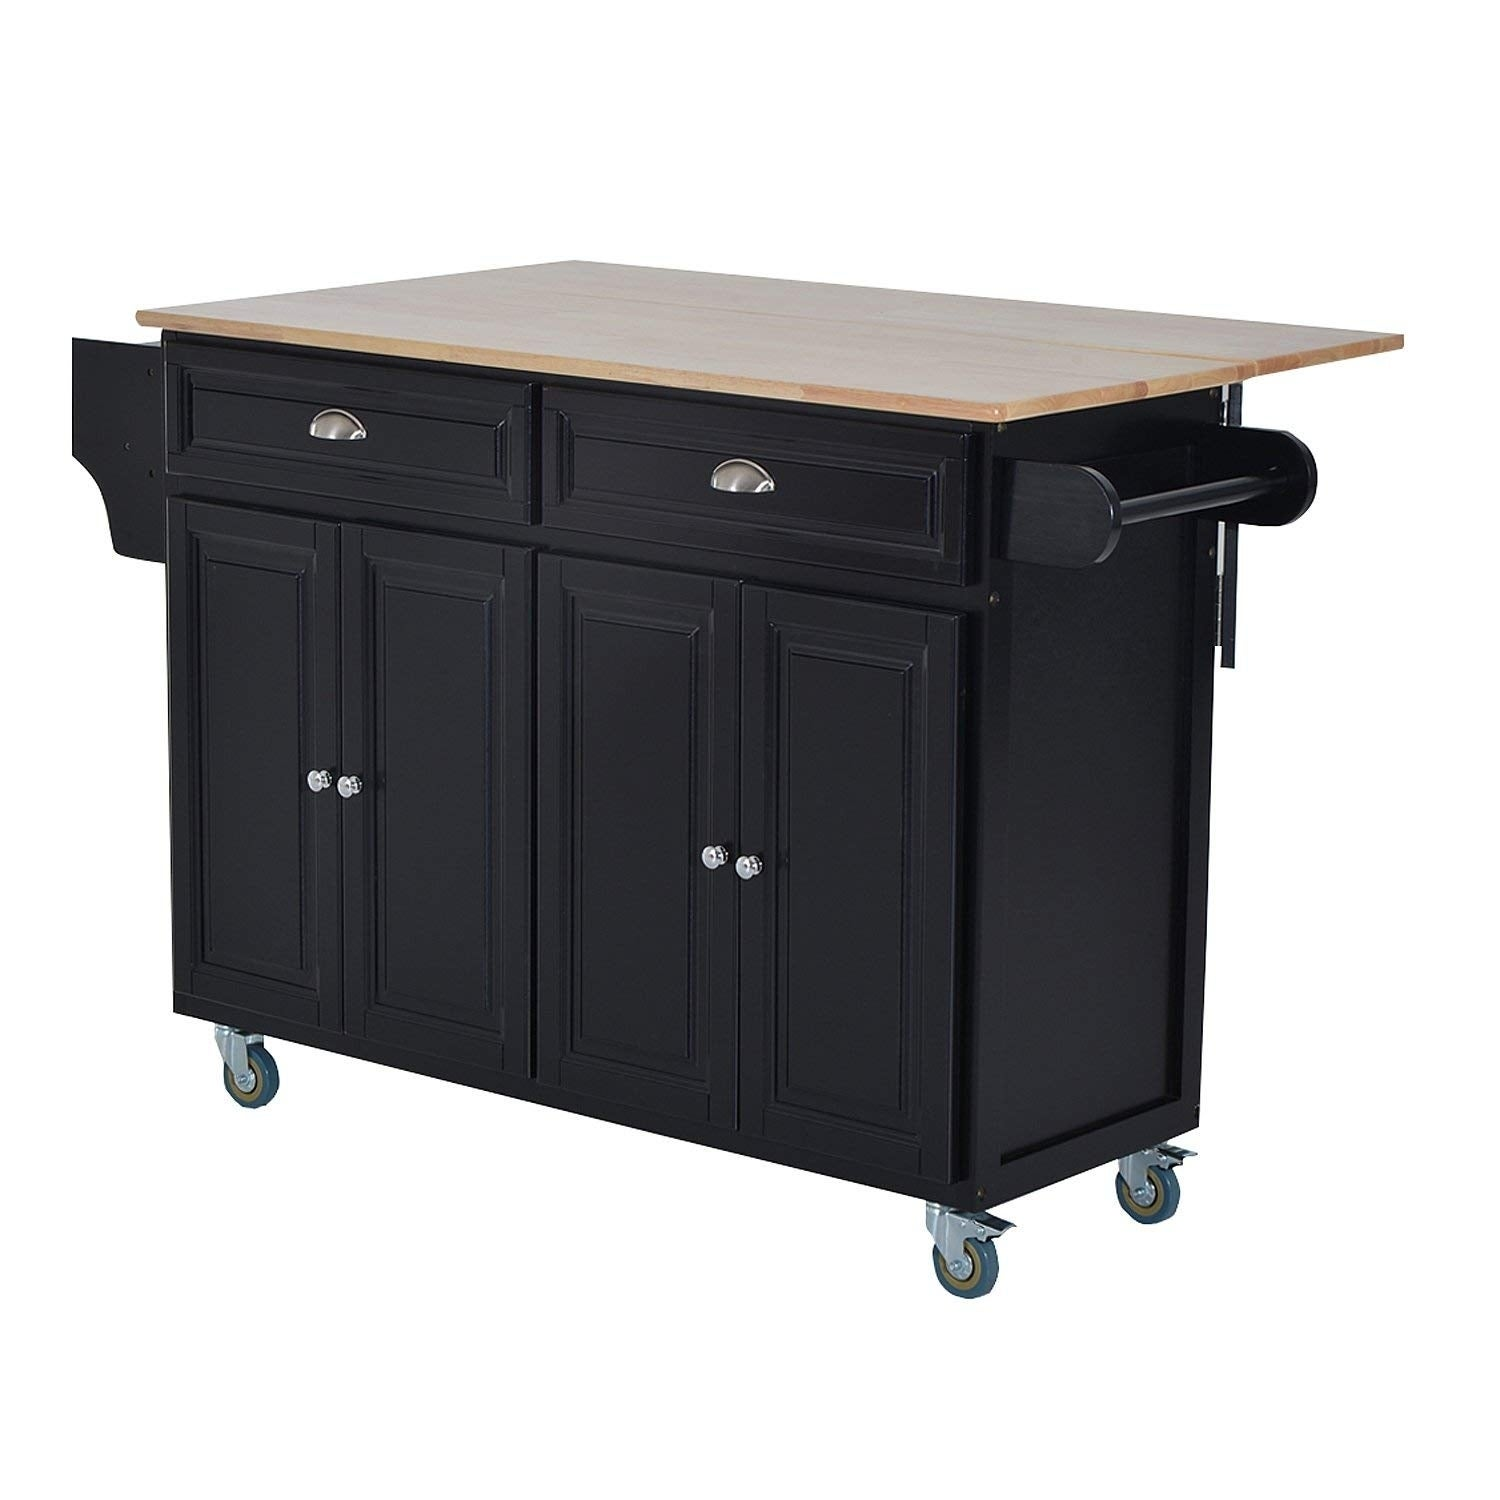 Homcom Wood Top Drop Leaf Multi Storage Cabinet Rolling Kitchen Island Table Cart With Wheels Black On Free Shipping Today